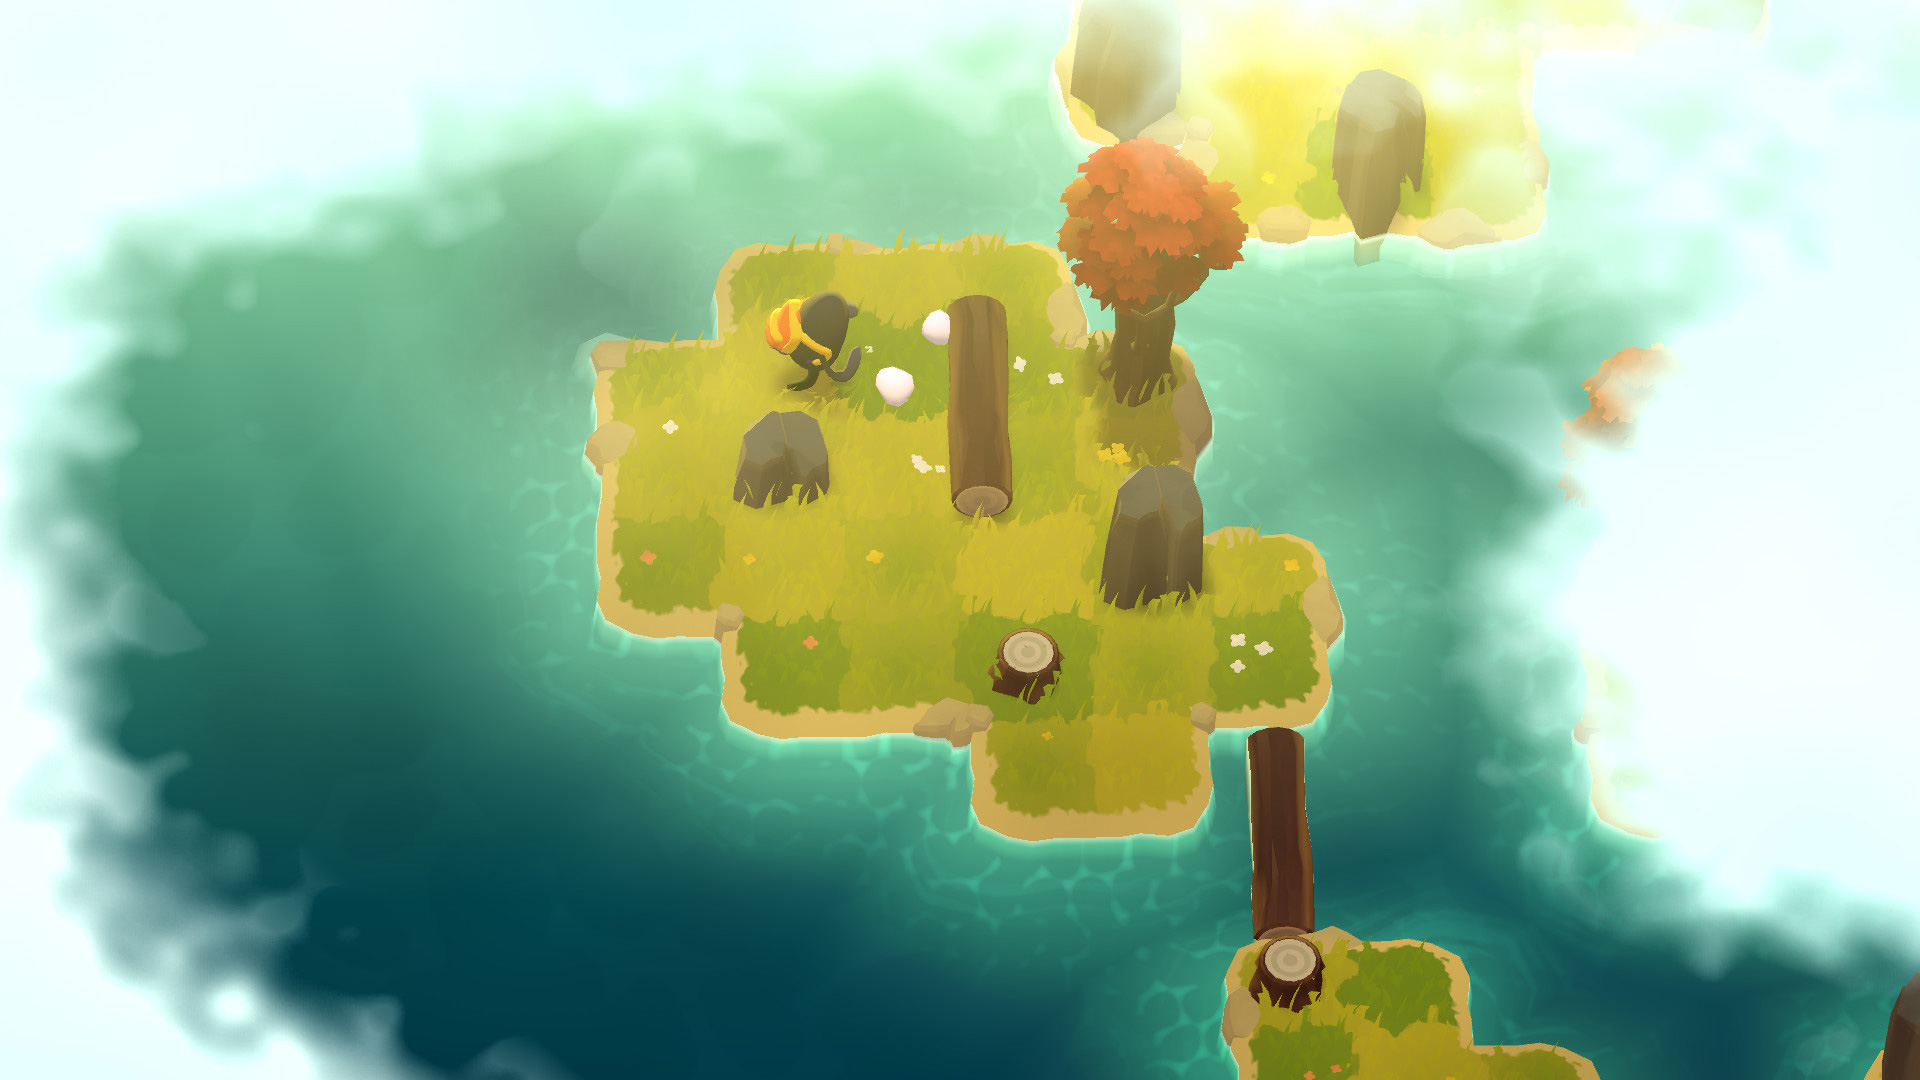 A Monster's Expedition is a chill puzzle game about shoving trees screenshot